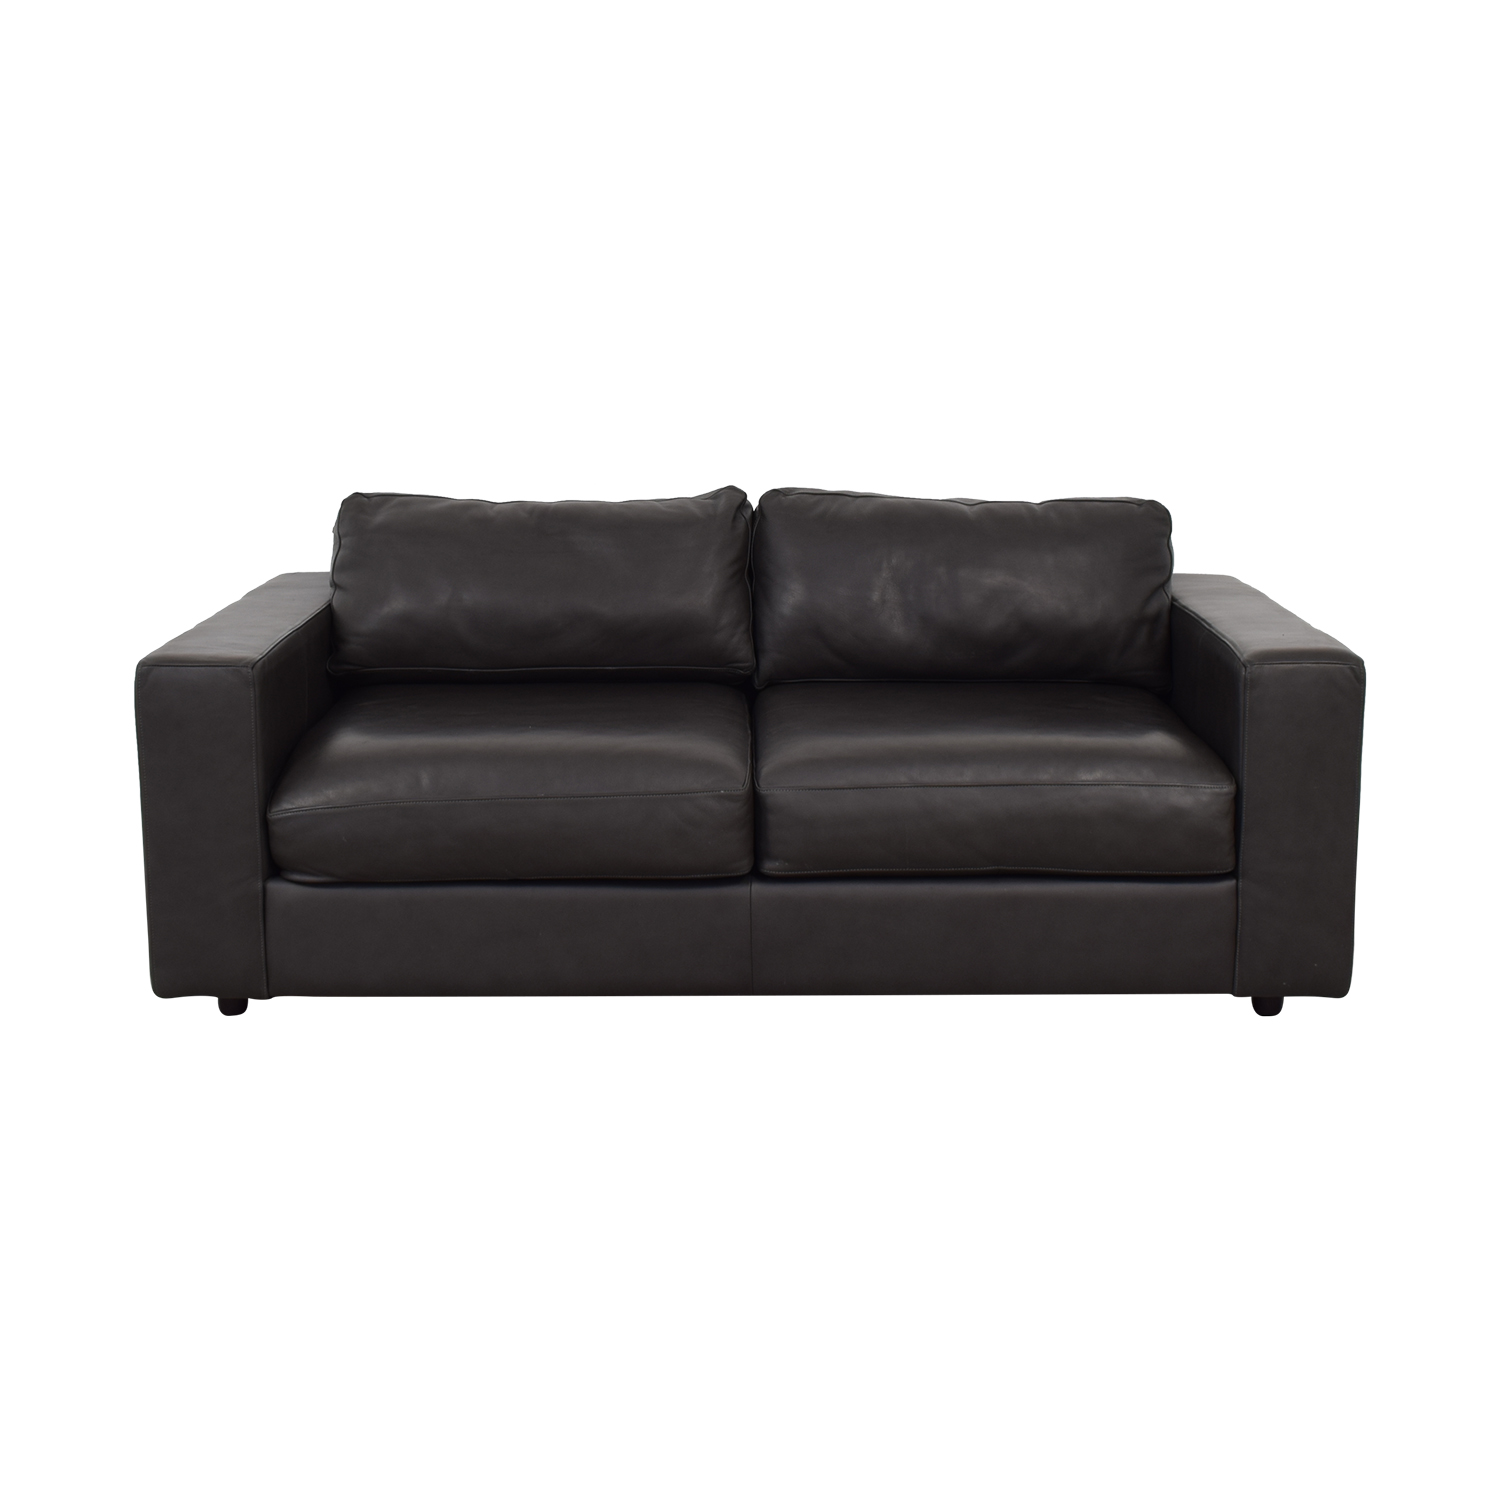 West Elm Urban Graphite Leather Loveseat / Sofas